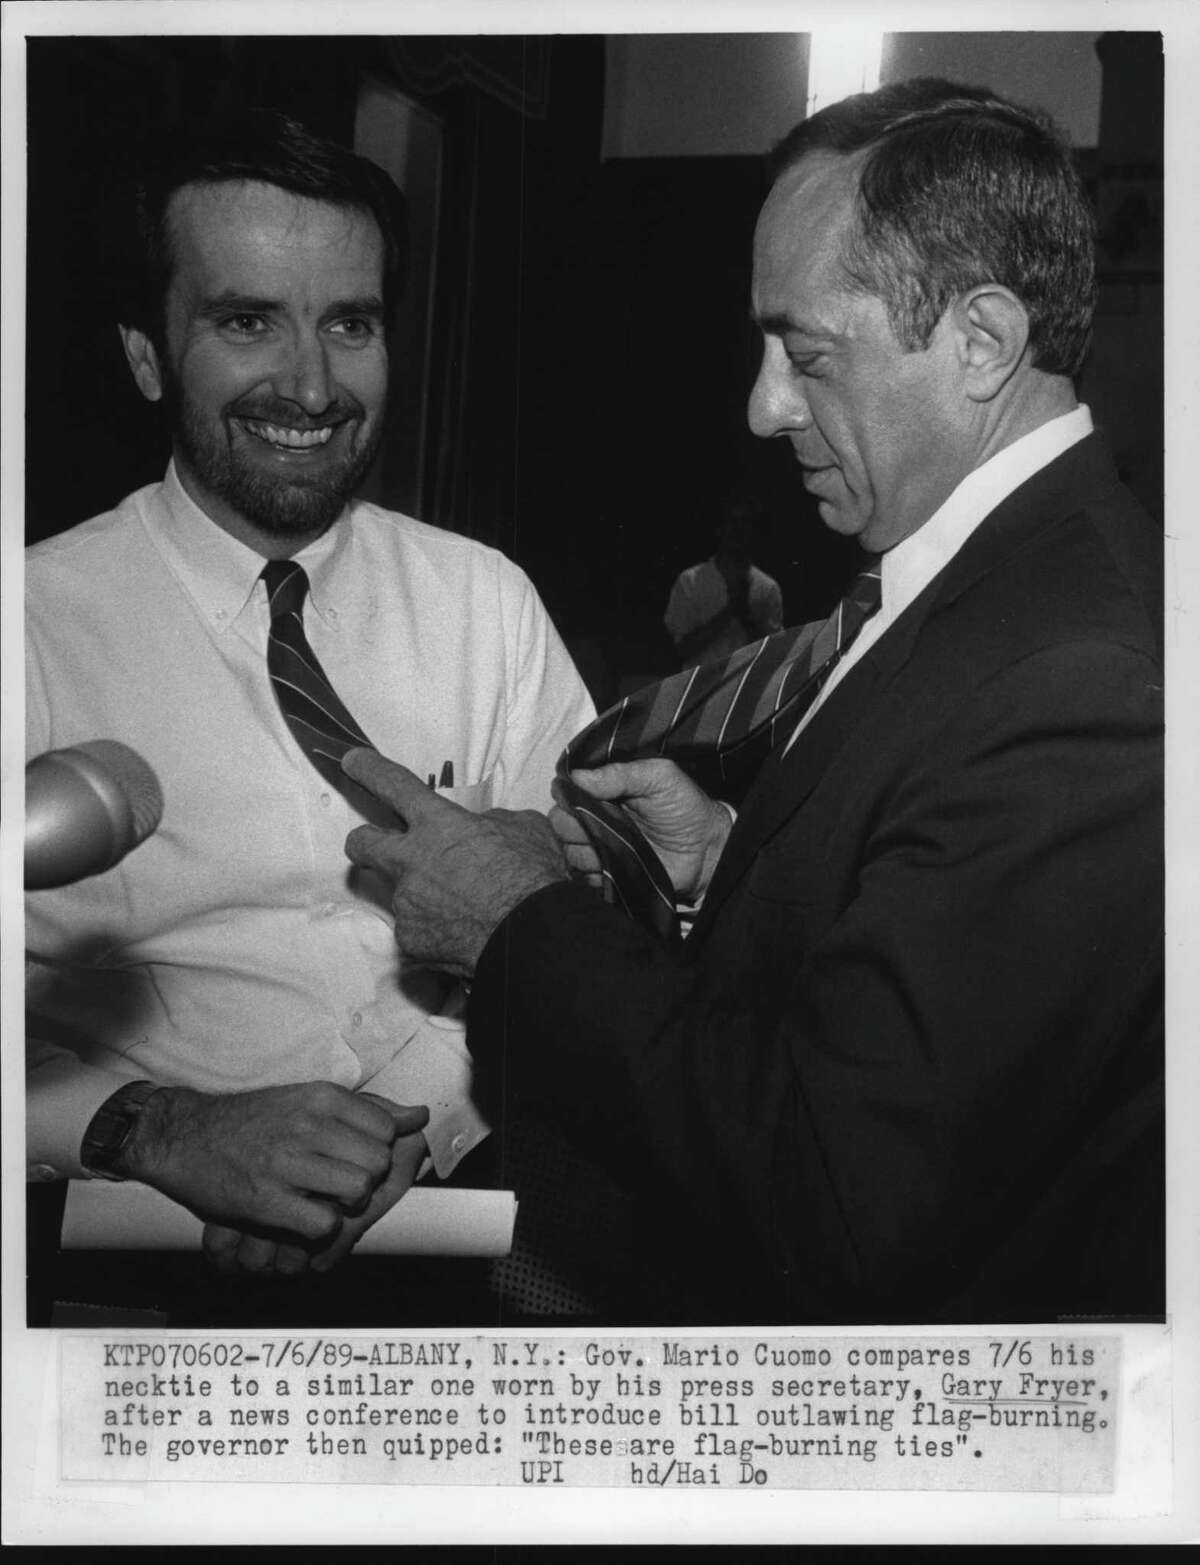 Albany, New York - Governor Mario Cuomo compares 7/6 his necktie to a similar one worn by his press secretary, Gary Fryer, after a news conference to introduce bill outlawing flag-burning. The governor then quipped: